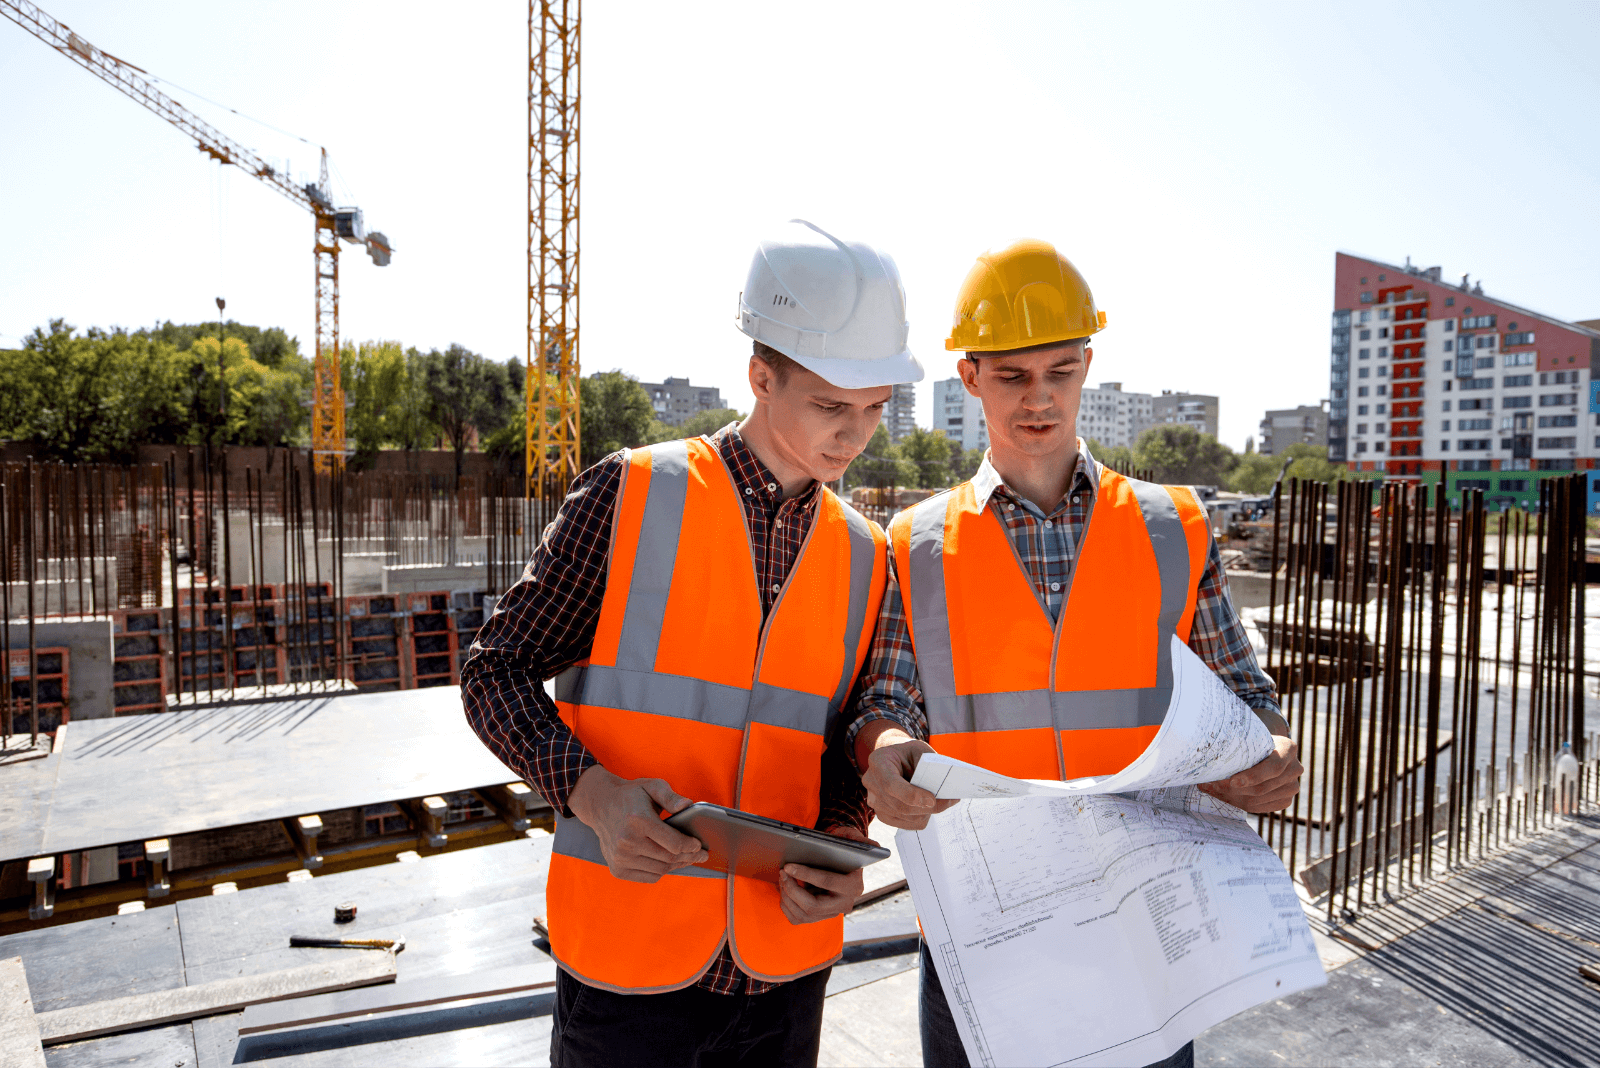 Duties & Responsibilities of a Safety Officer in the Construction Industry - Kiri Align